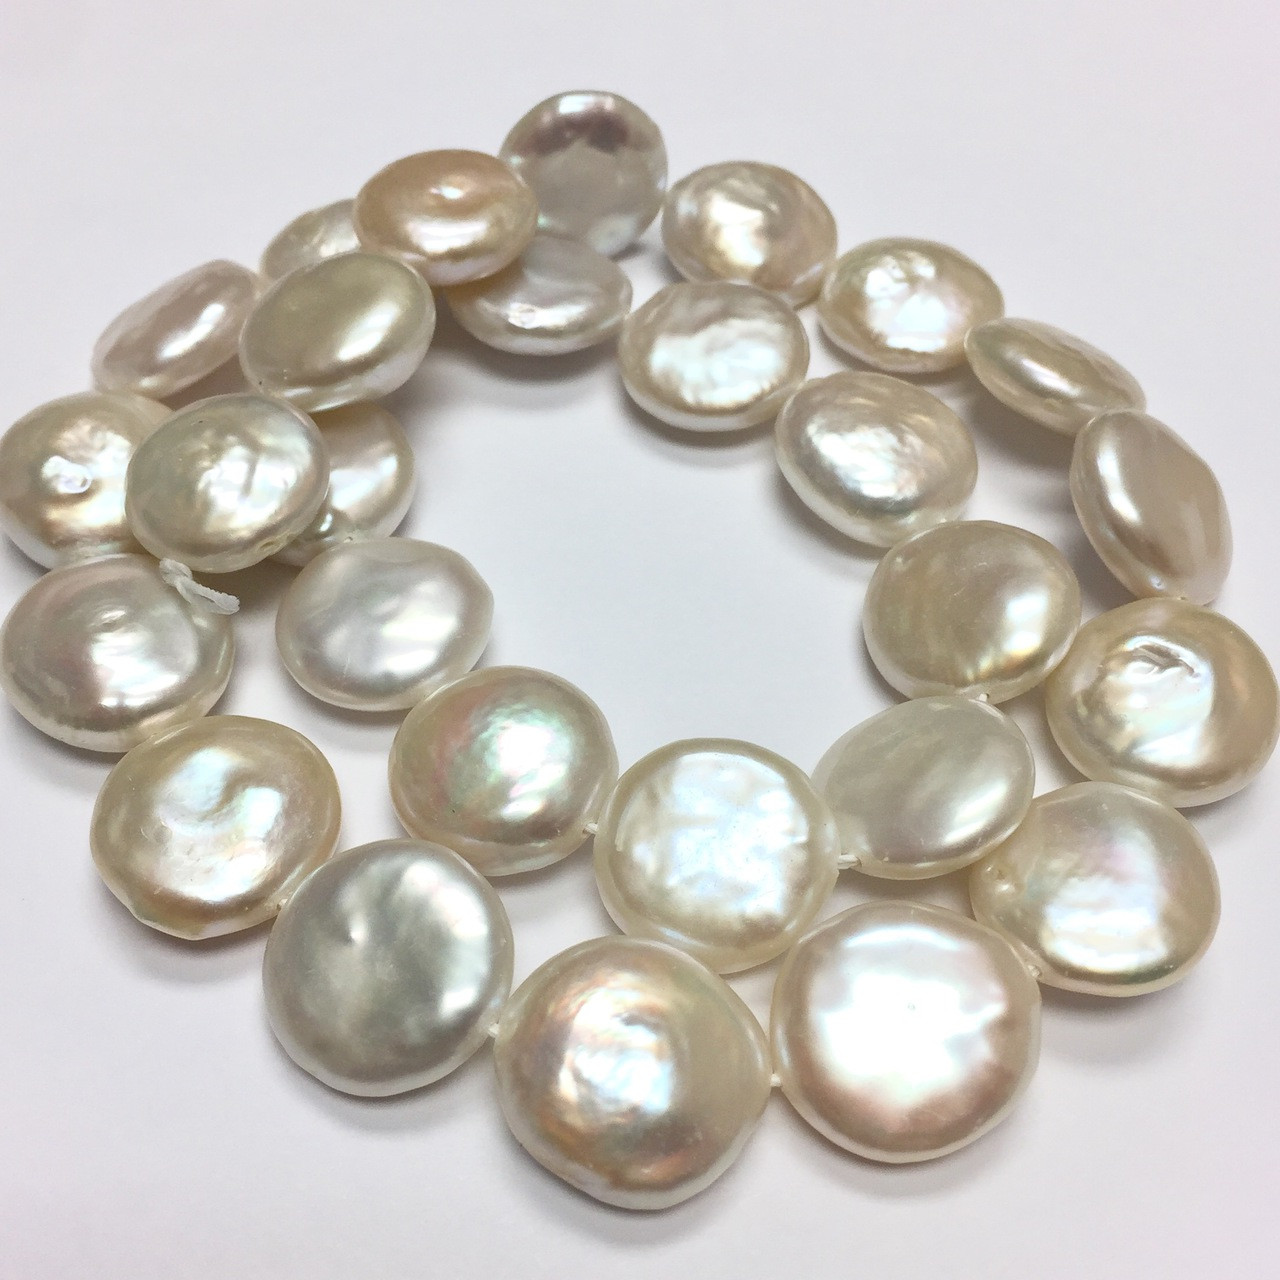 9035a8fa2bae4 Freshwater Creamy White Coin Pearl Beads-14-15mm